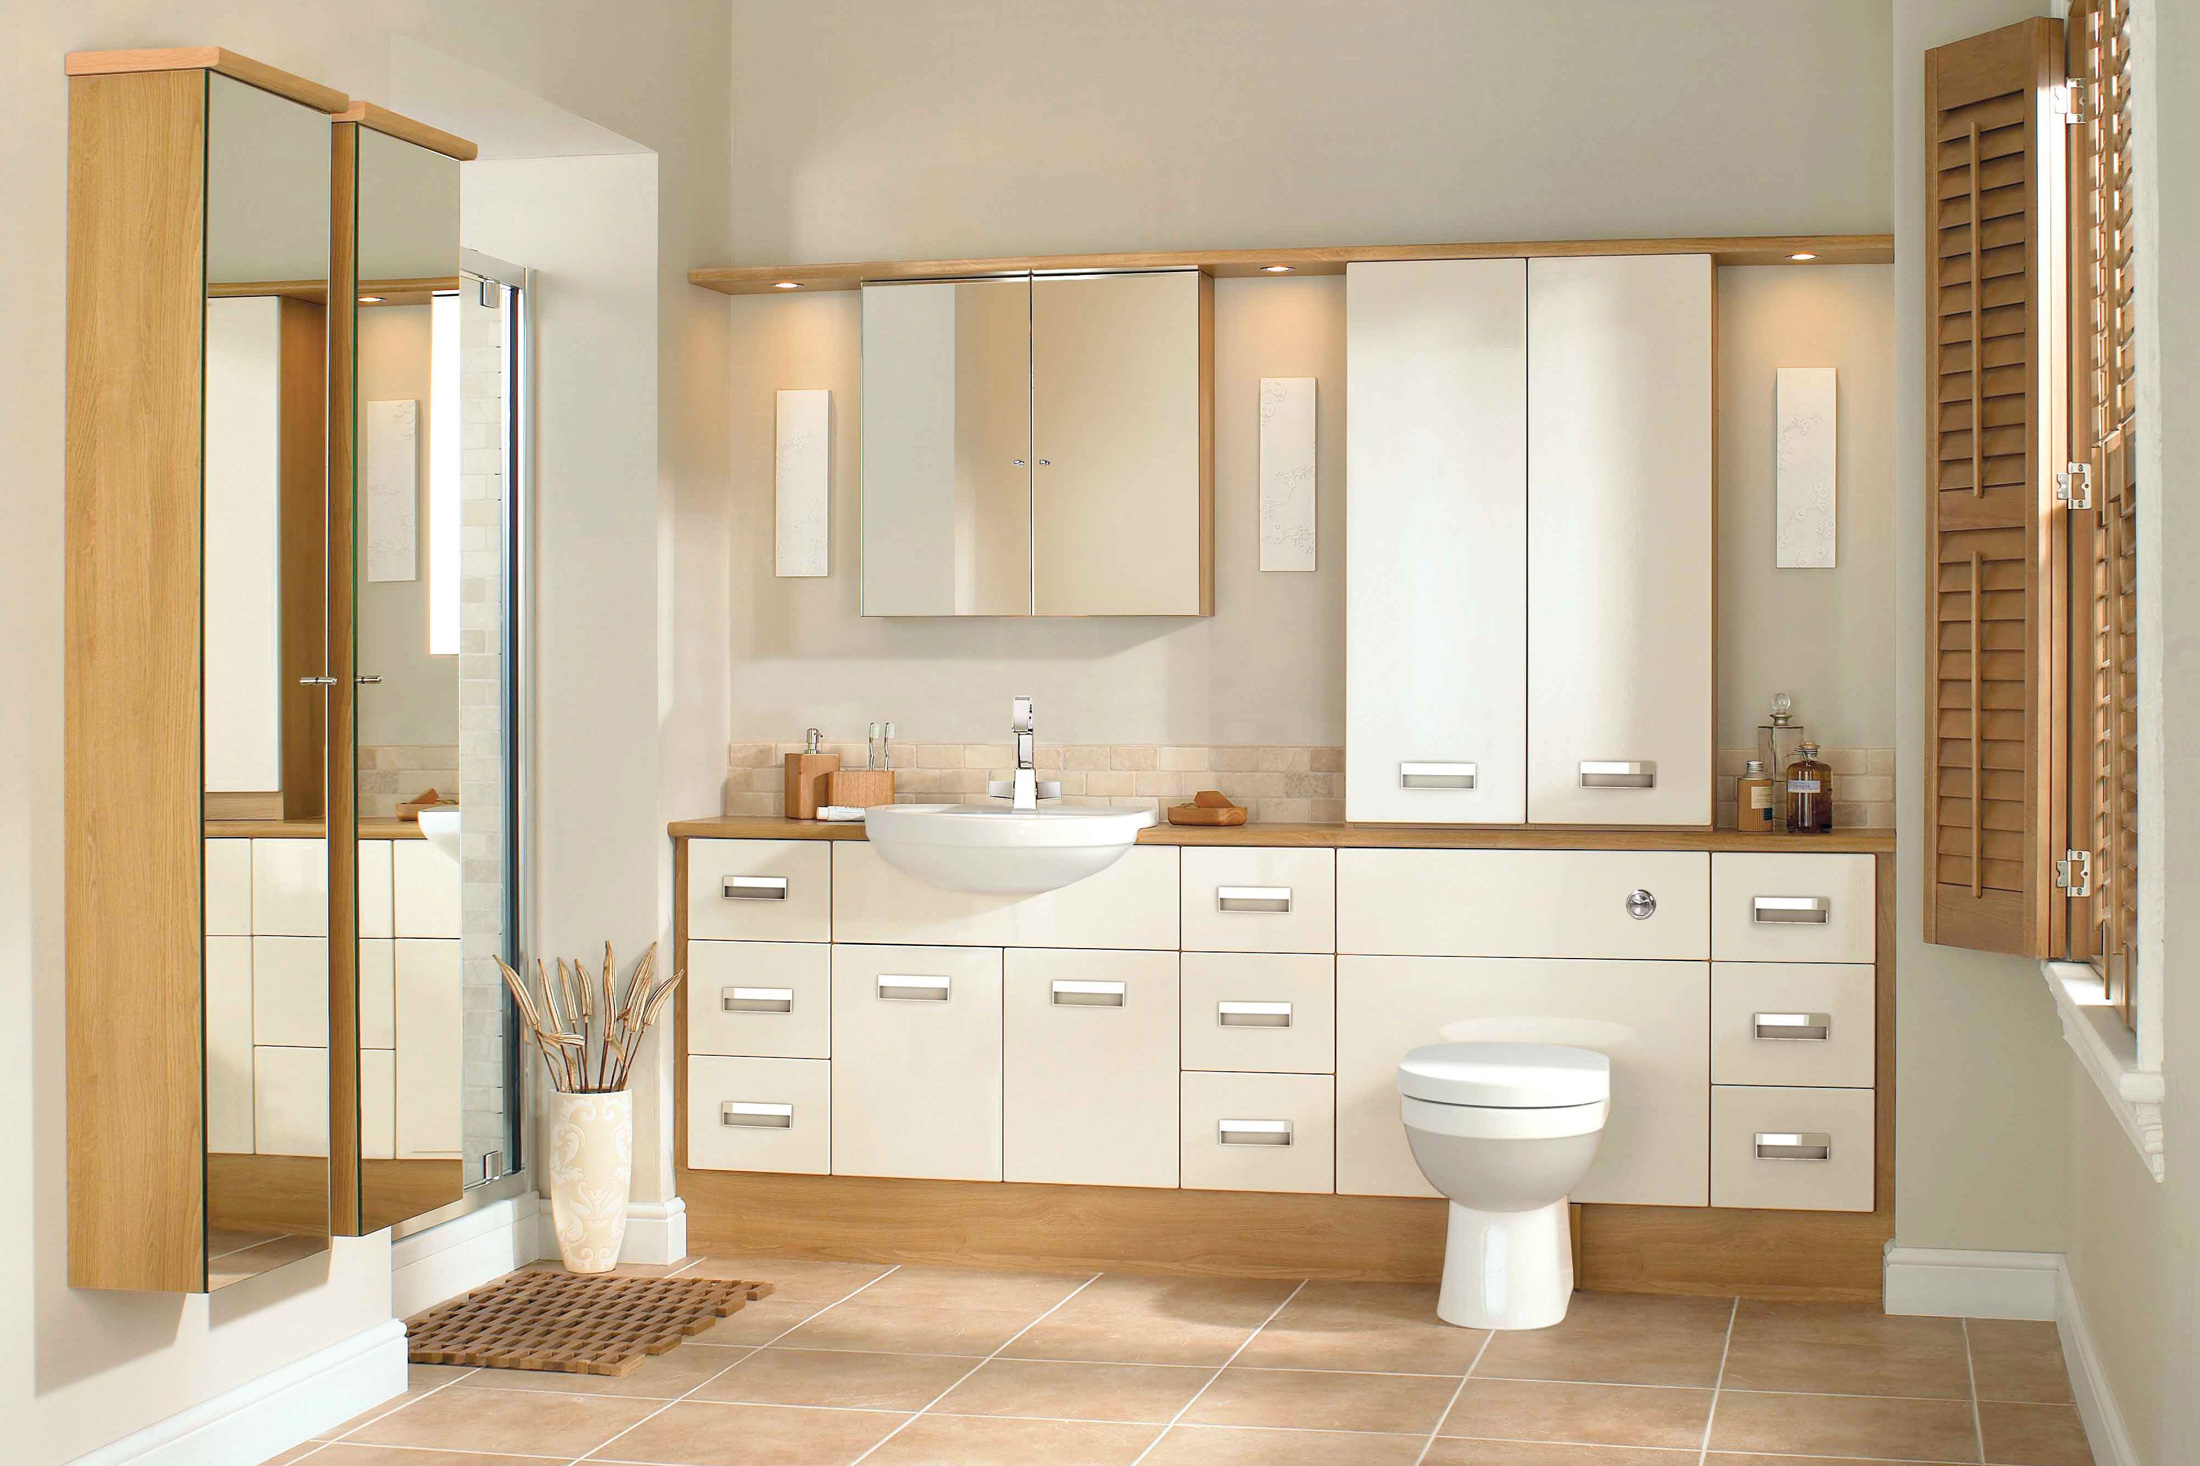 Fitted Bathrooms In Bolton: Putterills, Property For Sale And To Let, Hertfordshire, UK